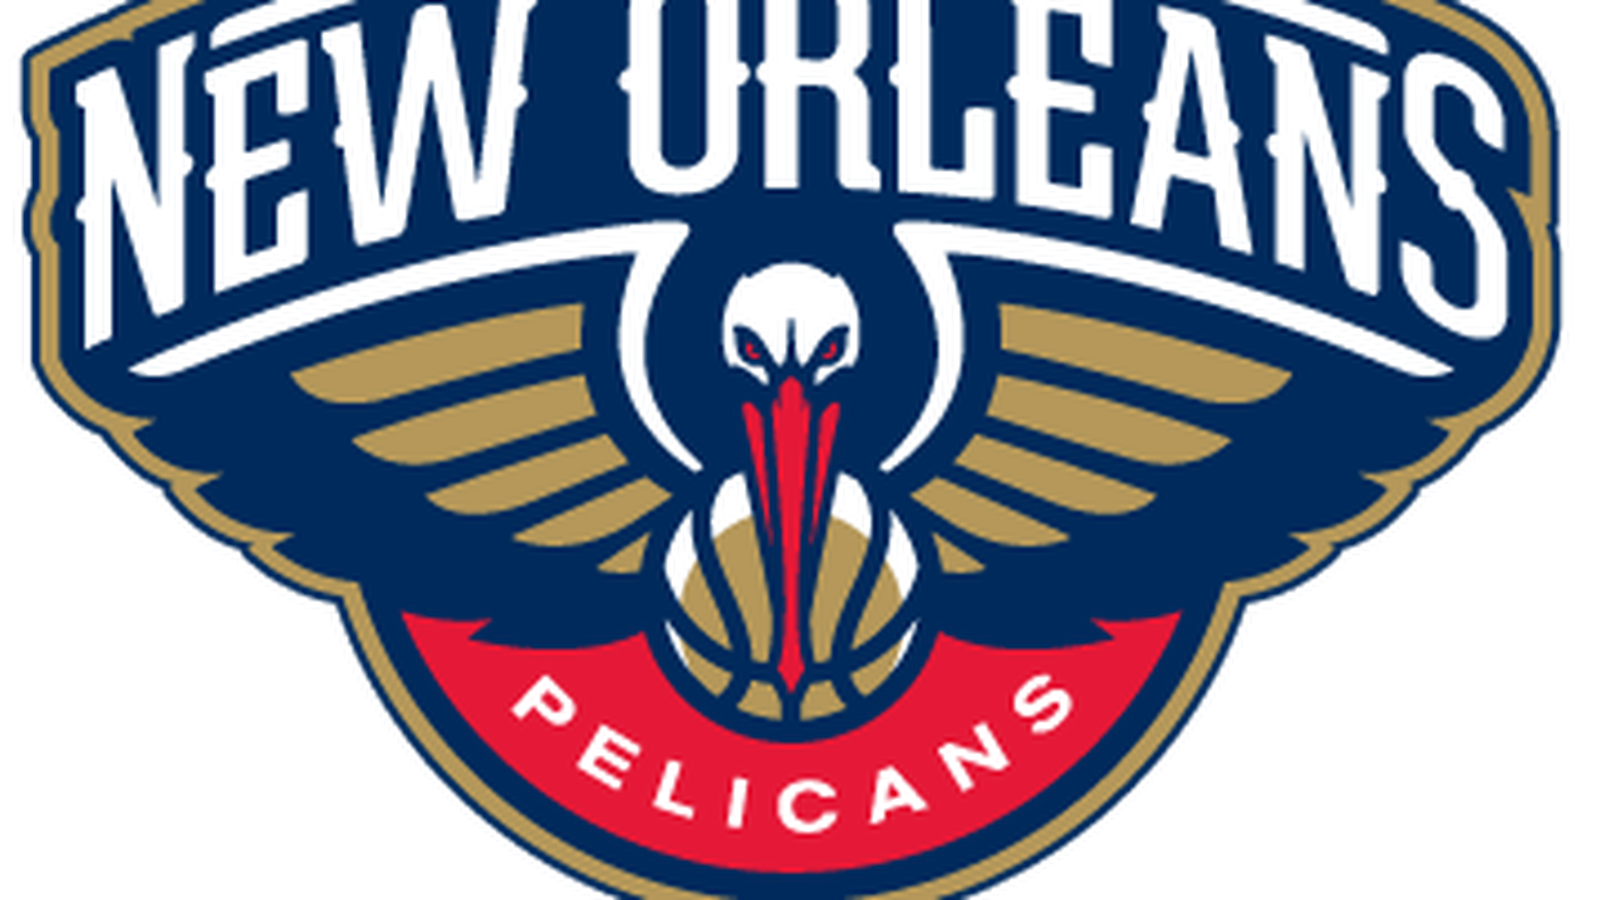 The New Orleans Pelicans logo: Why is that bird so angry ...